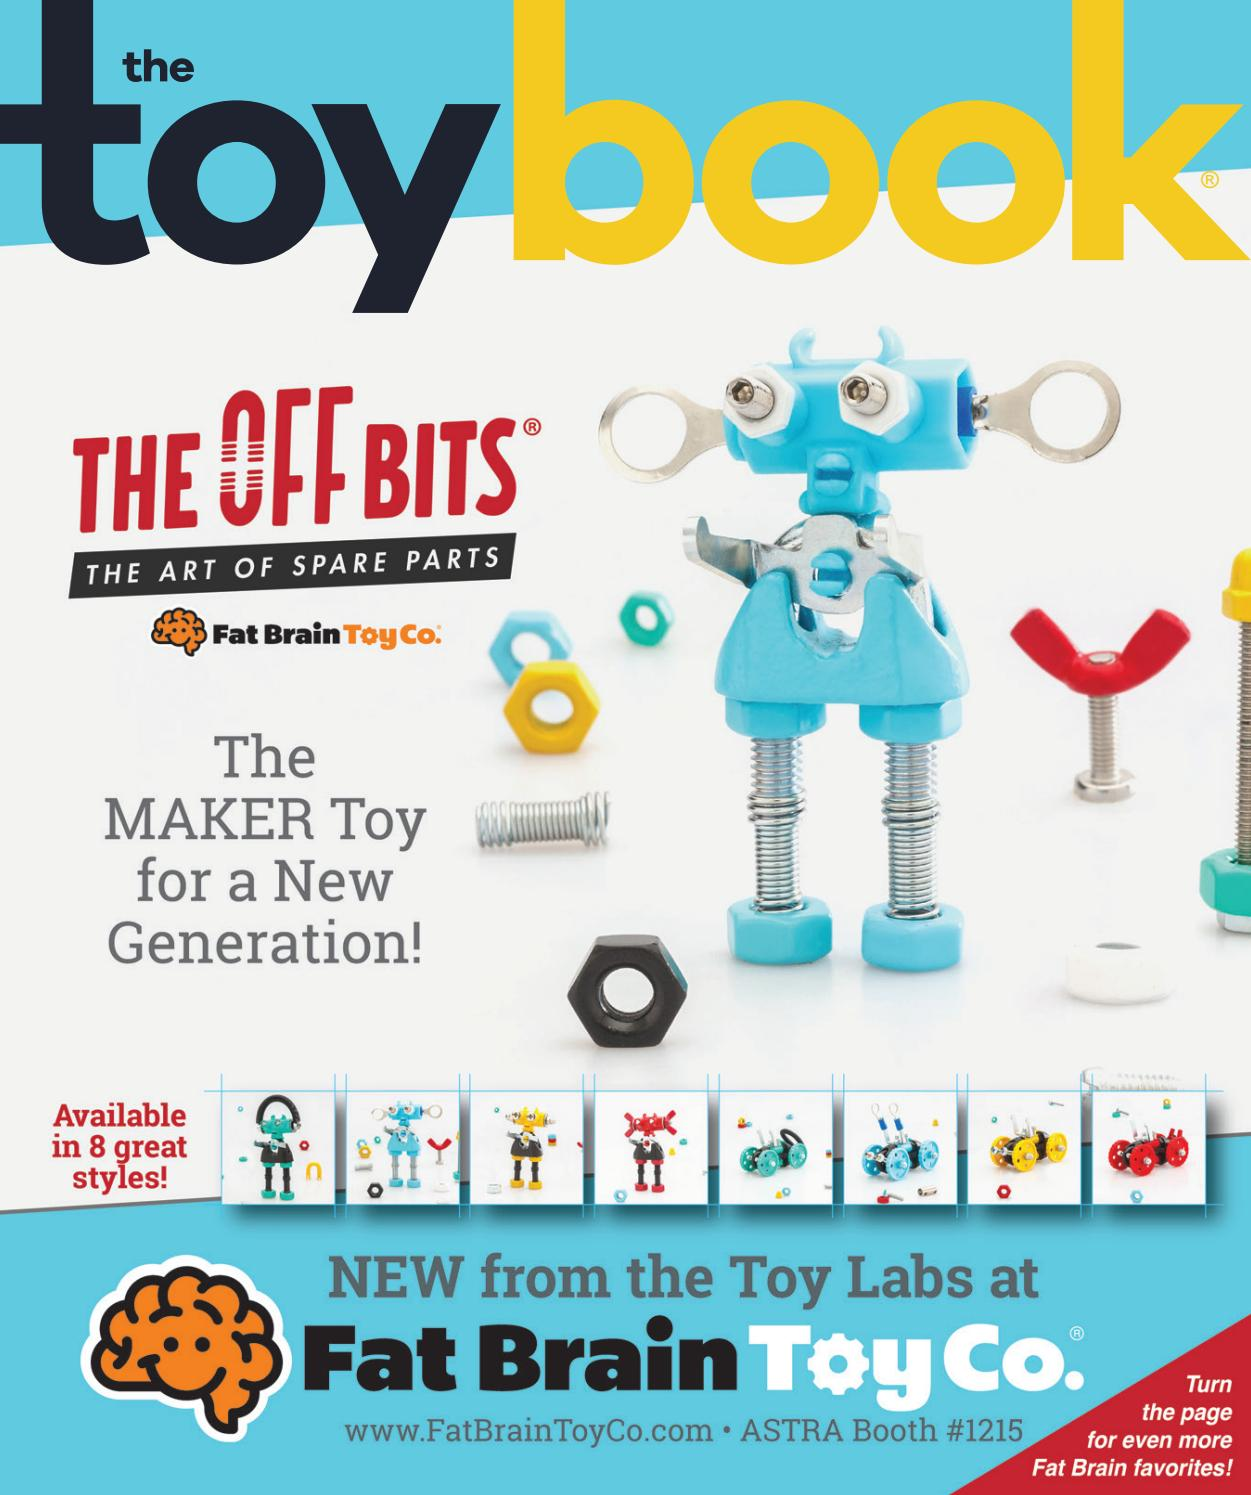 May/June 2017 by The Toy Book - issuu